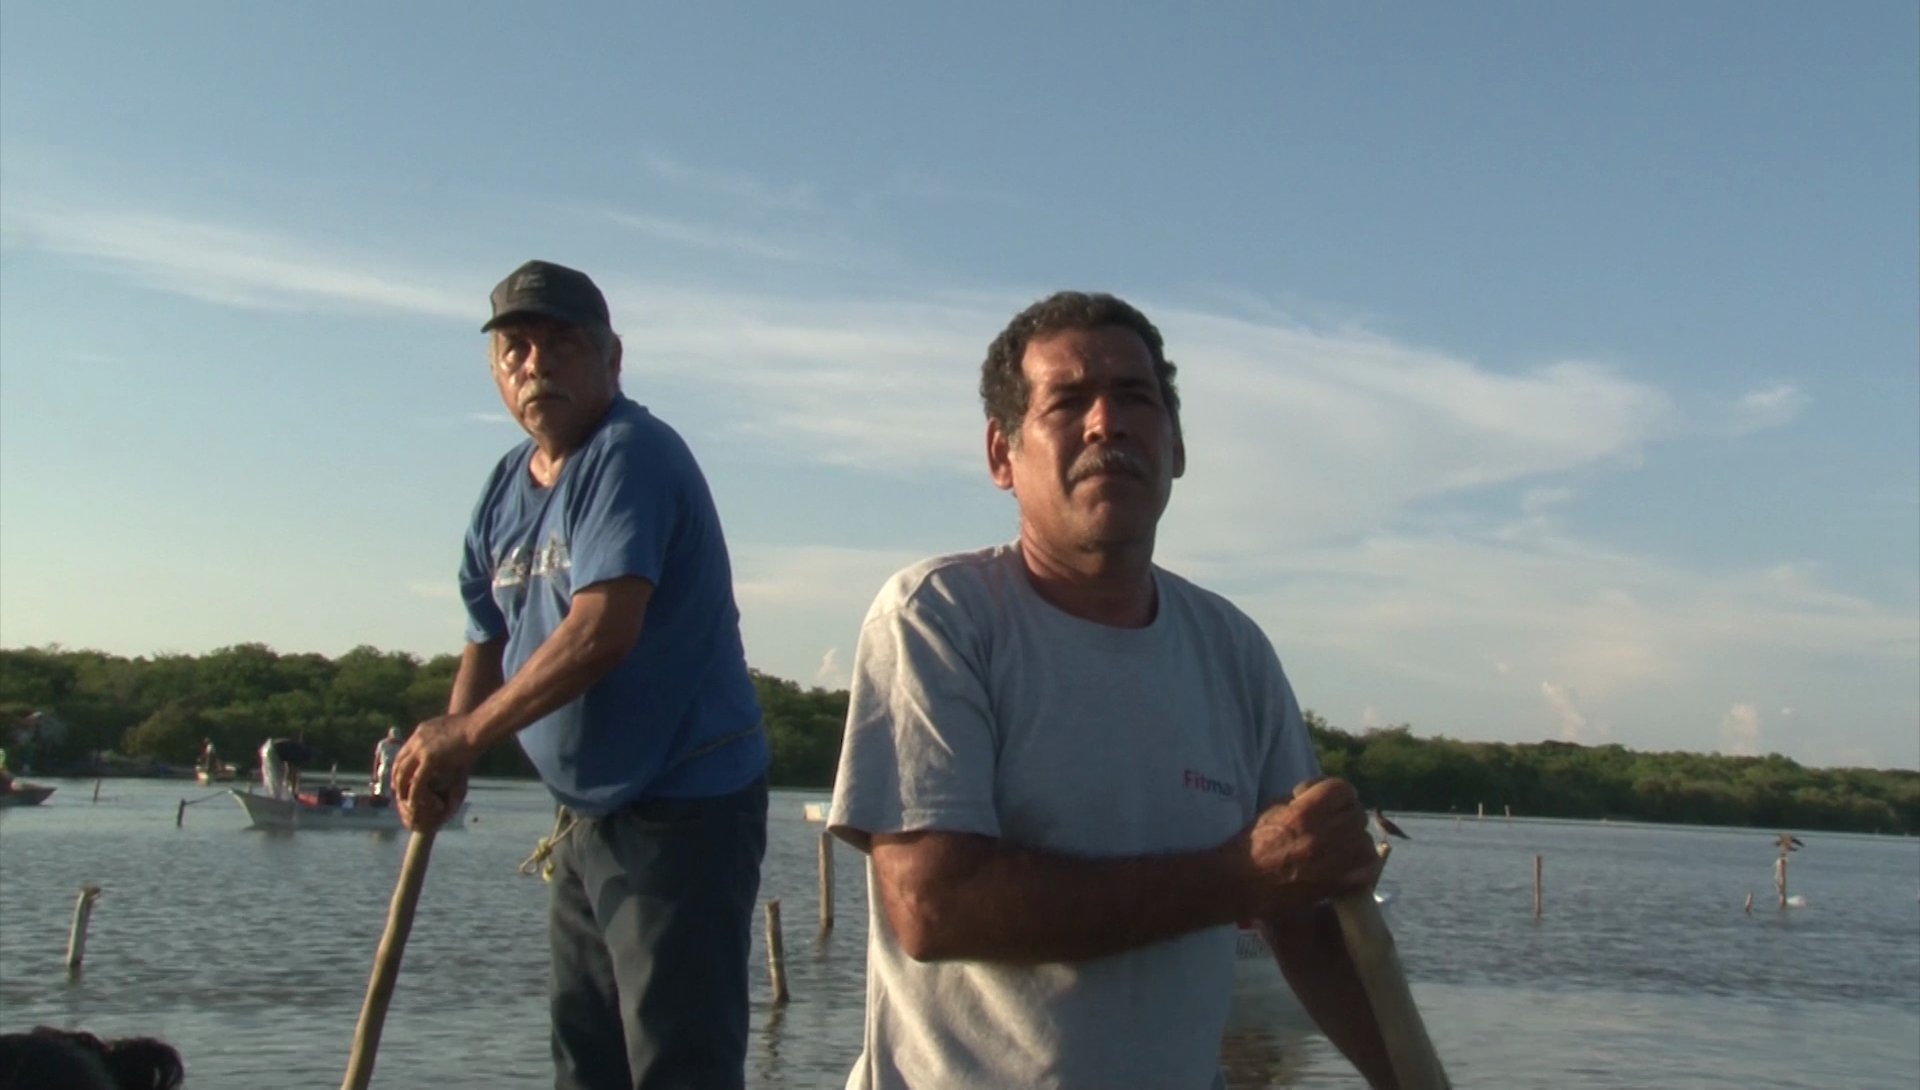 Historical fishing crisis in Huizache-Caimanero